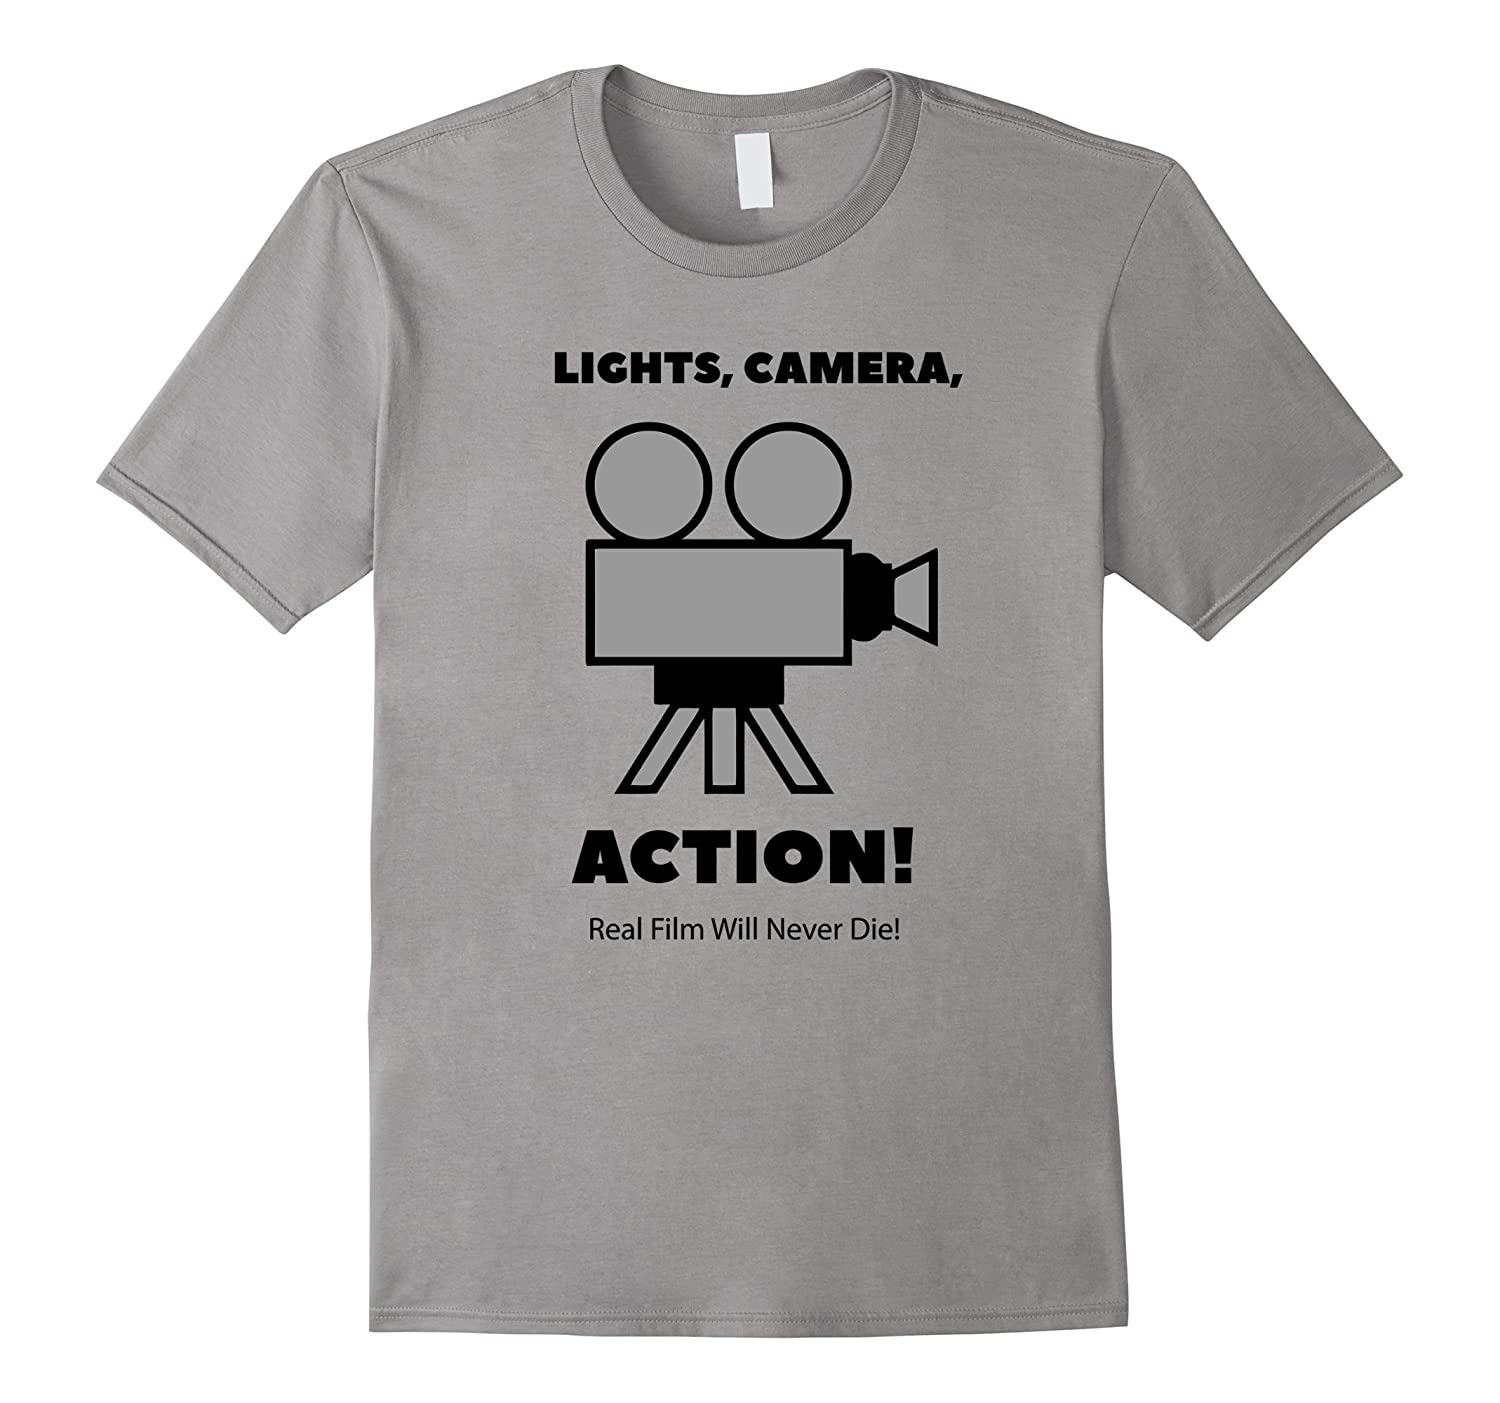 Lights Camera Action Shoot movies on Film-Vaci